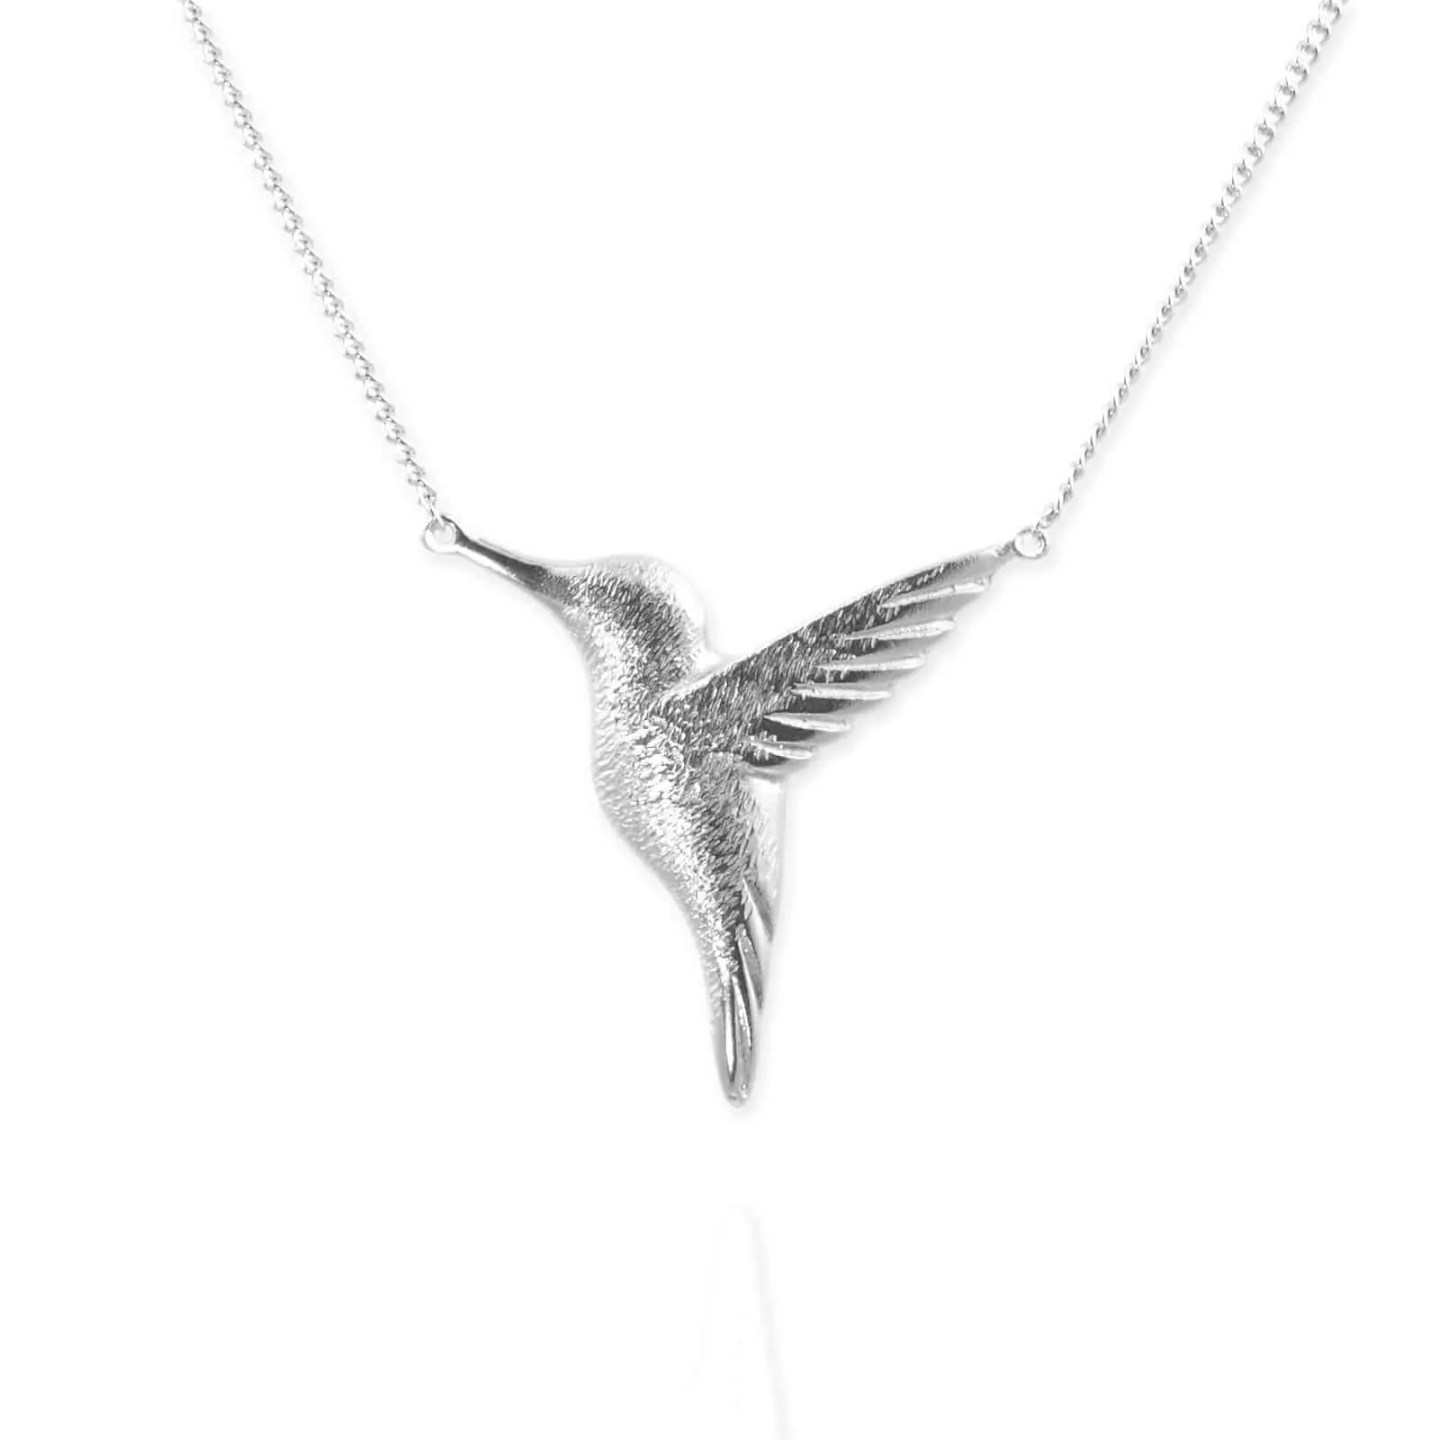 Mothers day giveaway Win a Jane Reinhardt hummingbird necklace 1